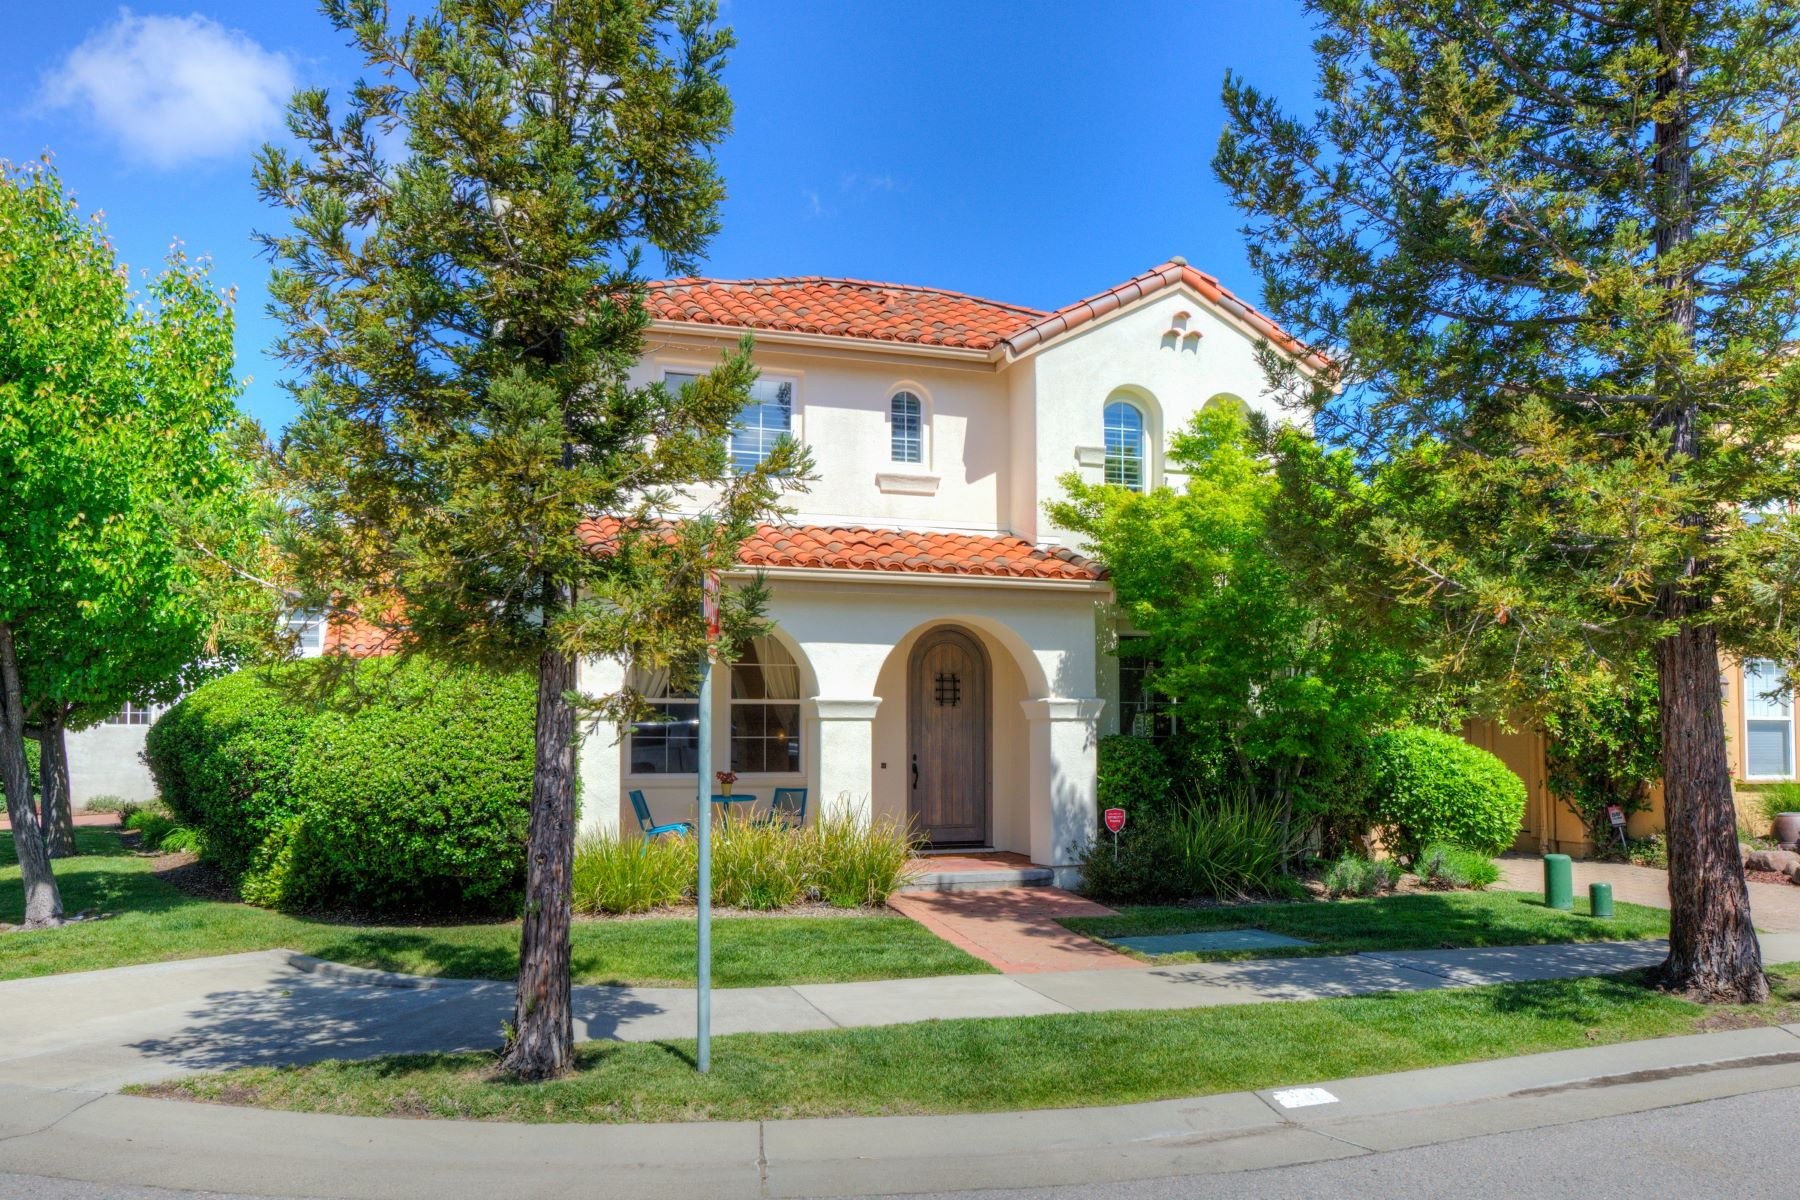 Single Family Home for Sale at Charming Home in Sought After Hamilton Community 58 Mildenhall Street Novato, California 94949 United States